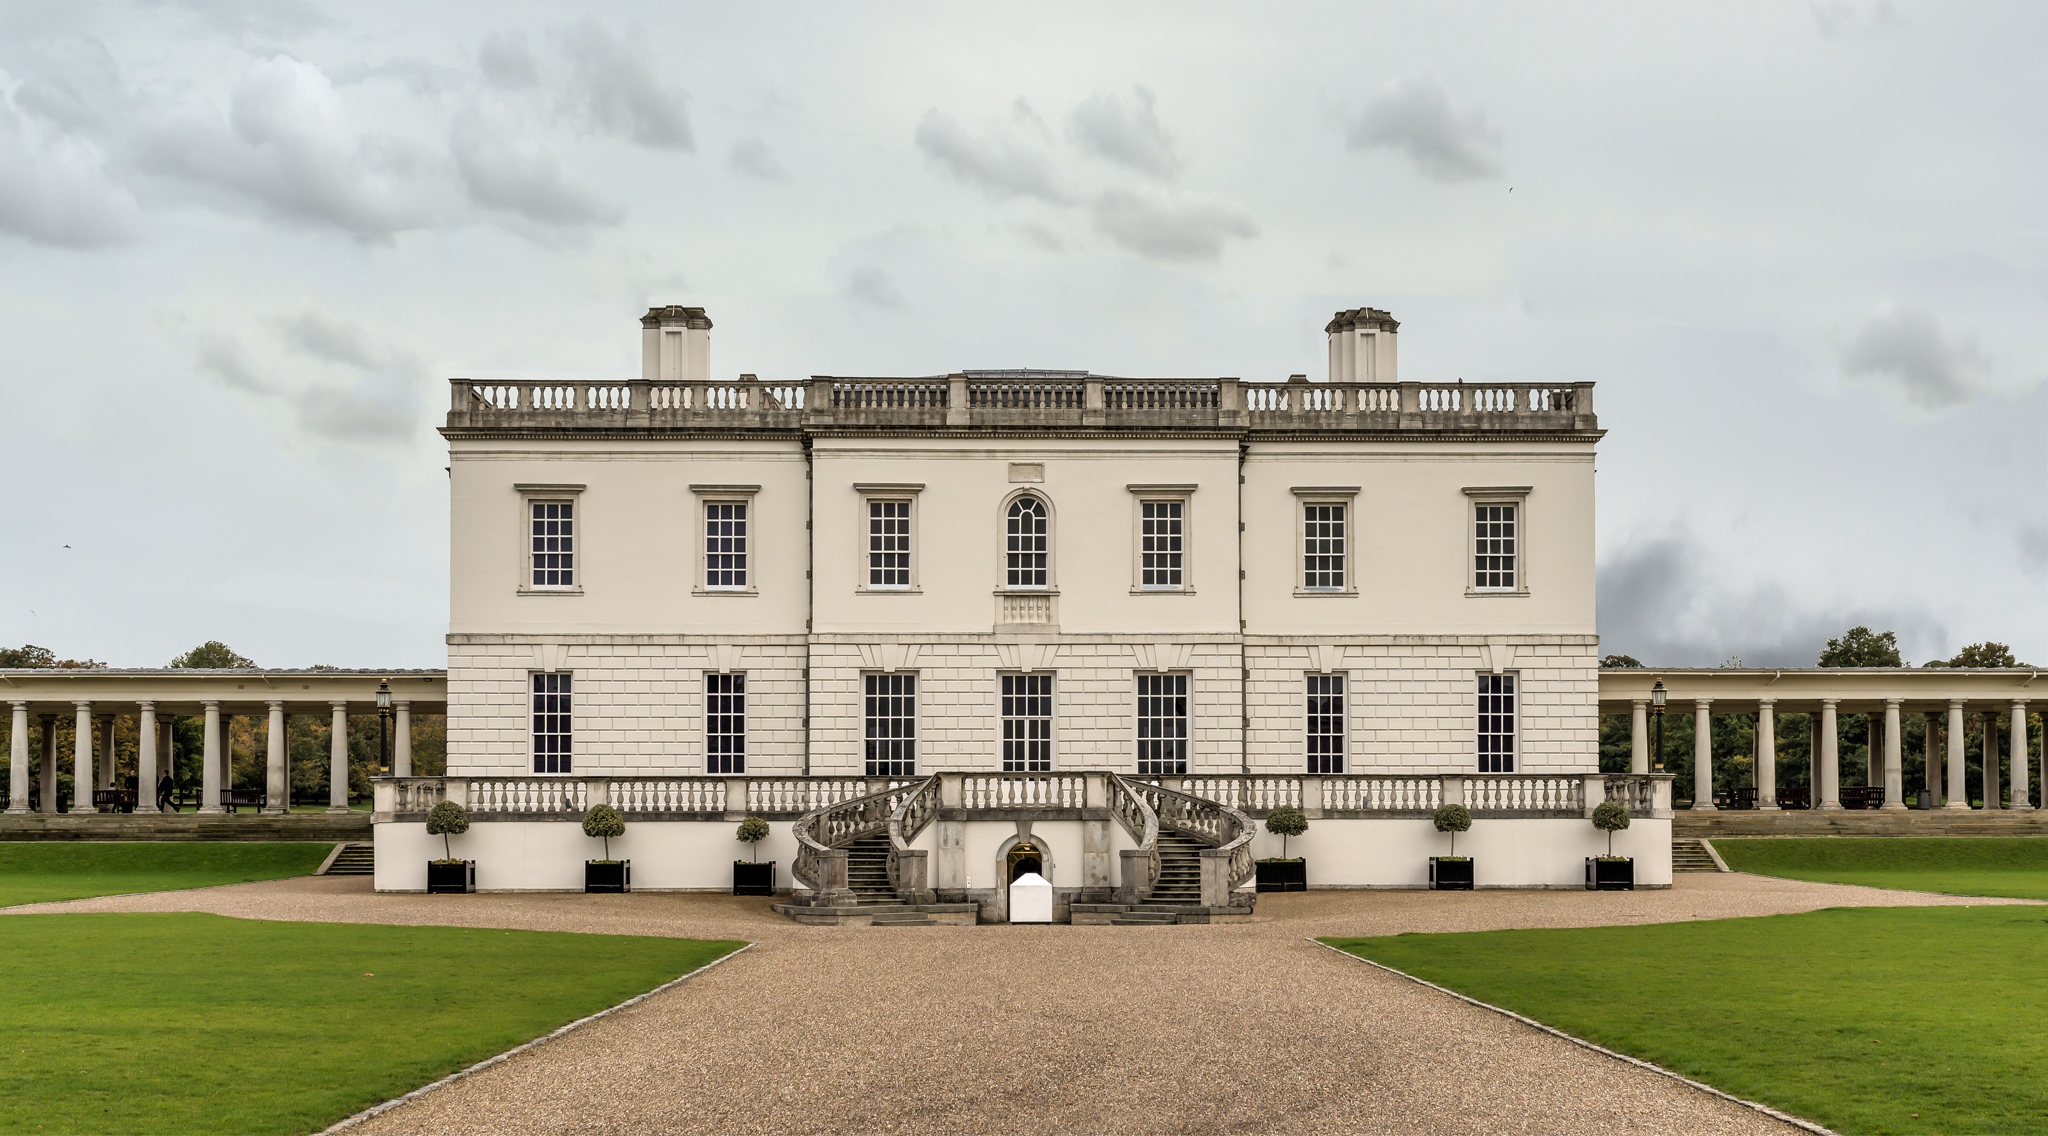 Best buildings in London: Queens House